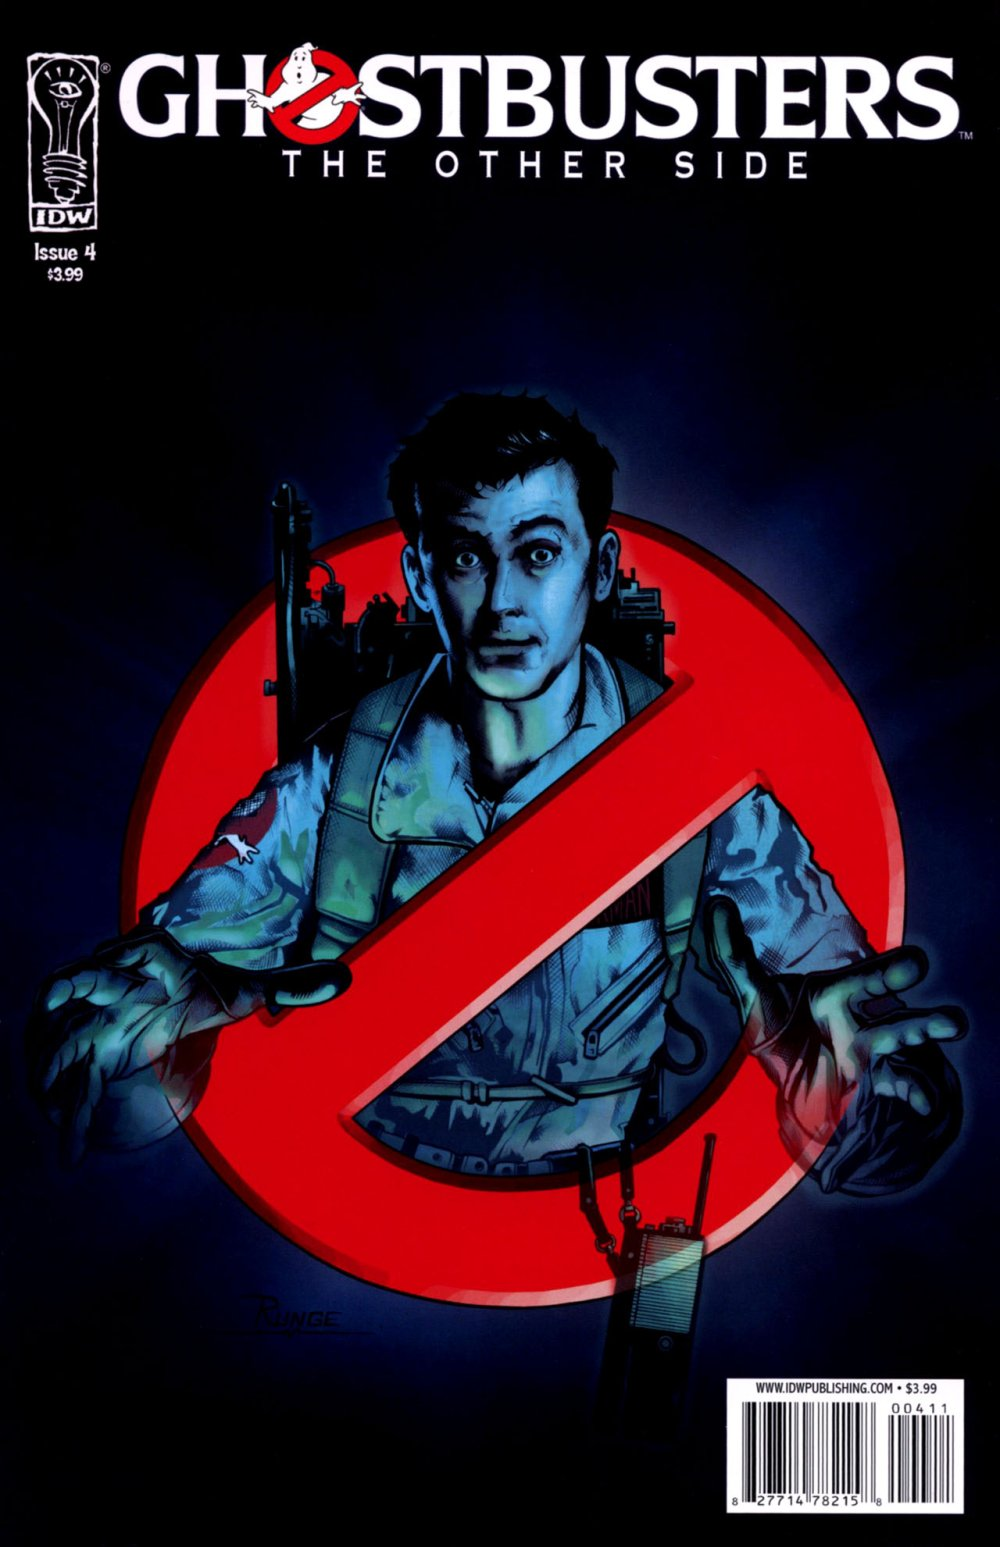 Ghostbusters: The Other Side 0004.jpg